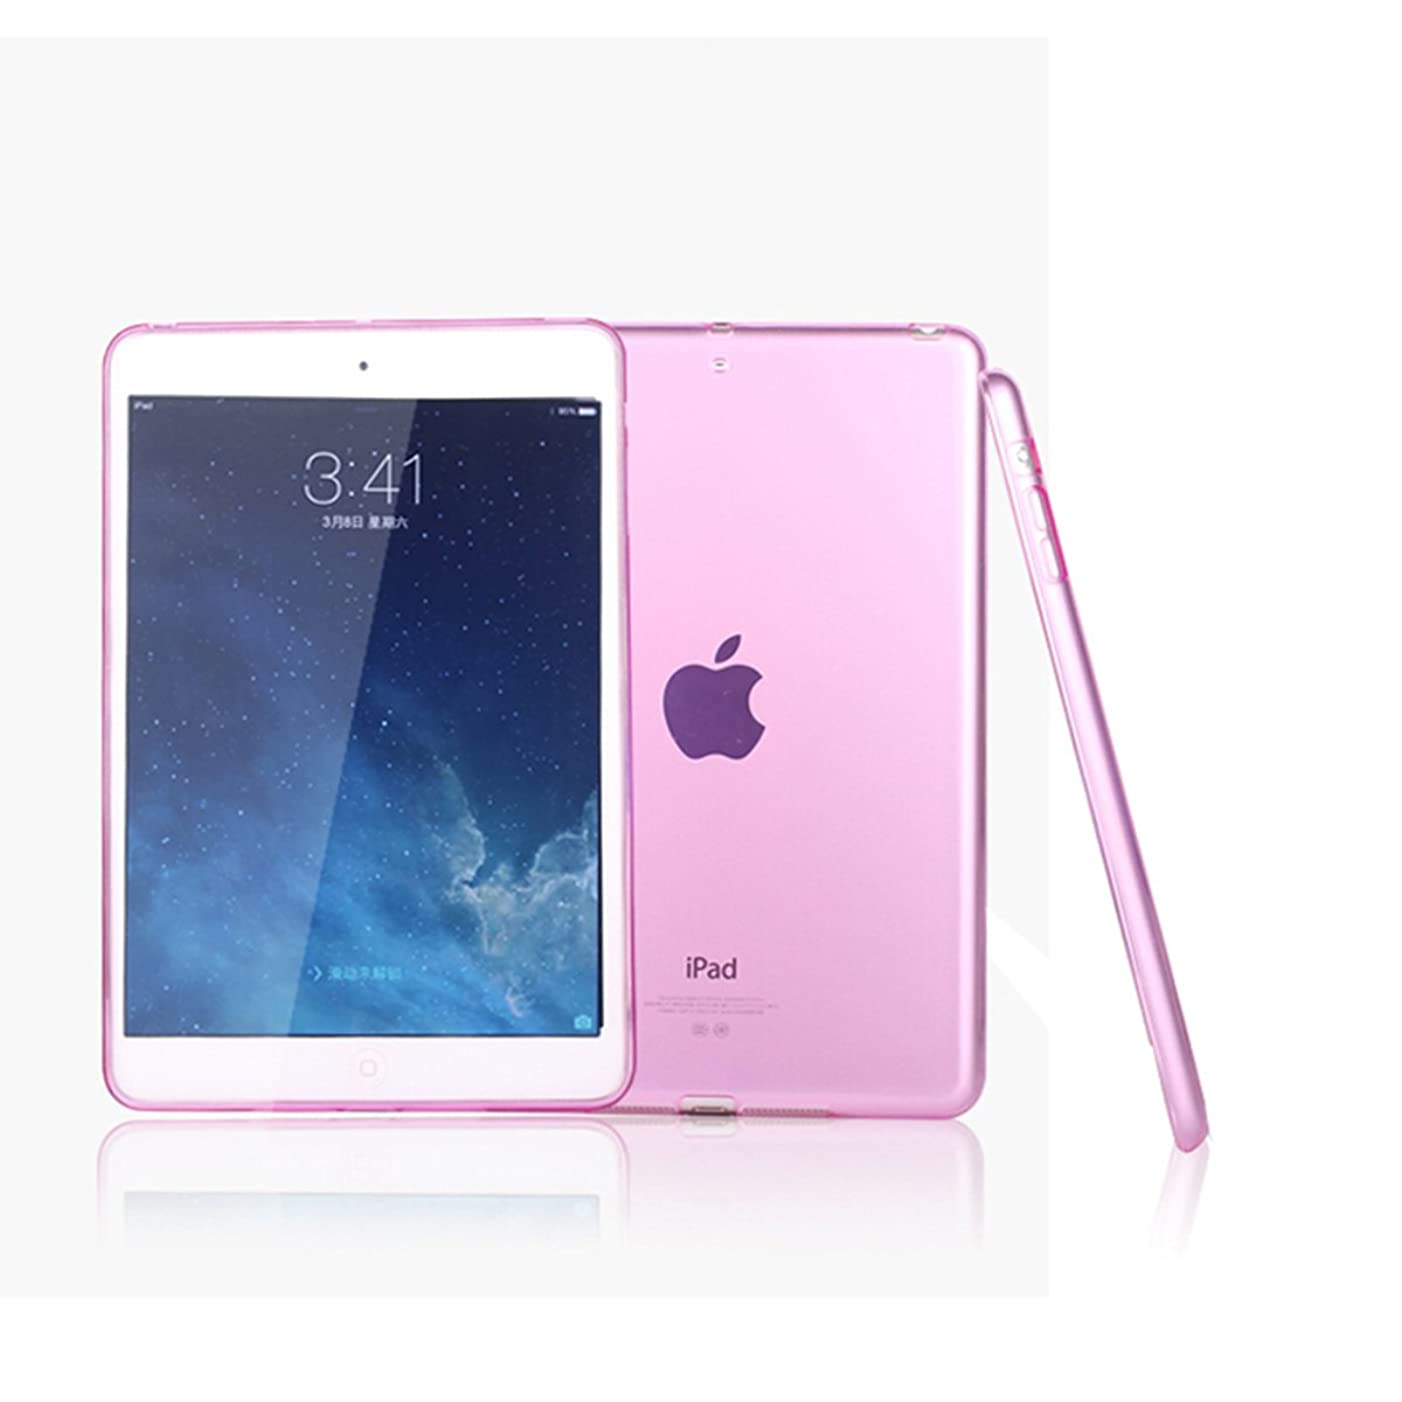 iPad Air/ipad 5 Case, Cavor Ultra-Thin Silicone Back Cover Clear Plain Soft TPU Gel Rubber Skin Case Waterproof Protector Shell for Apple iPad Air/ipad 5 (Pink)